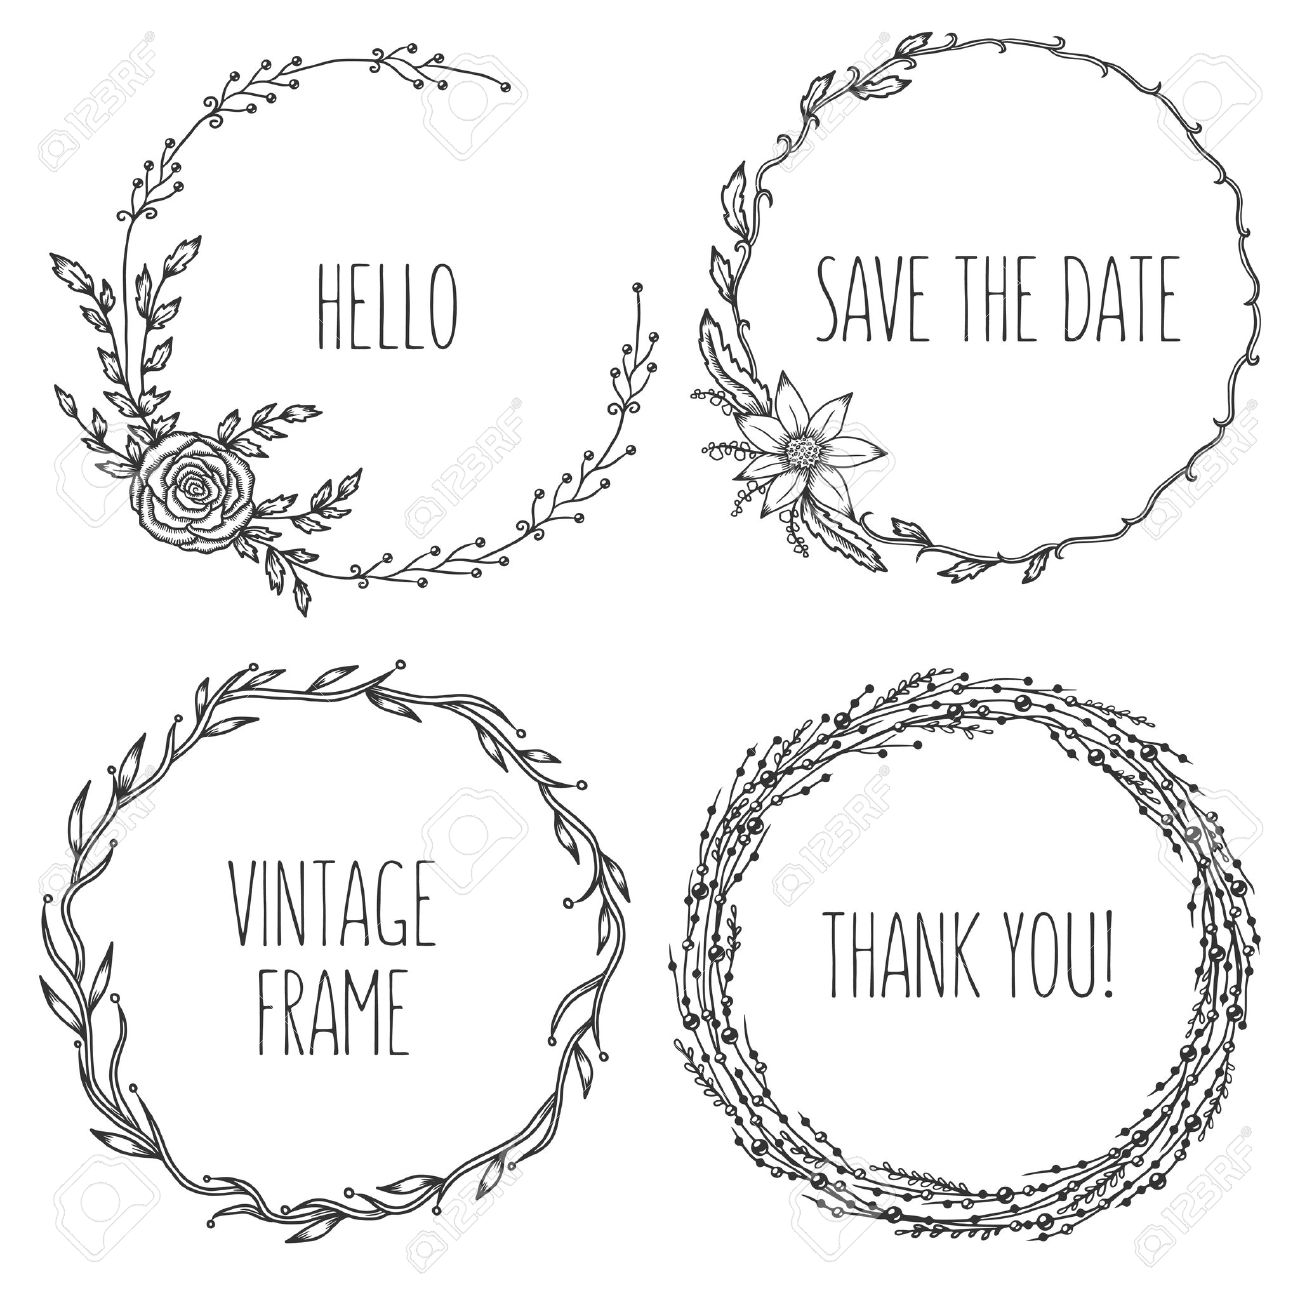 Collection Of Trendy Cute Floral Frames Graphic Design Elements For Wedding